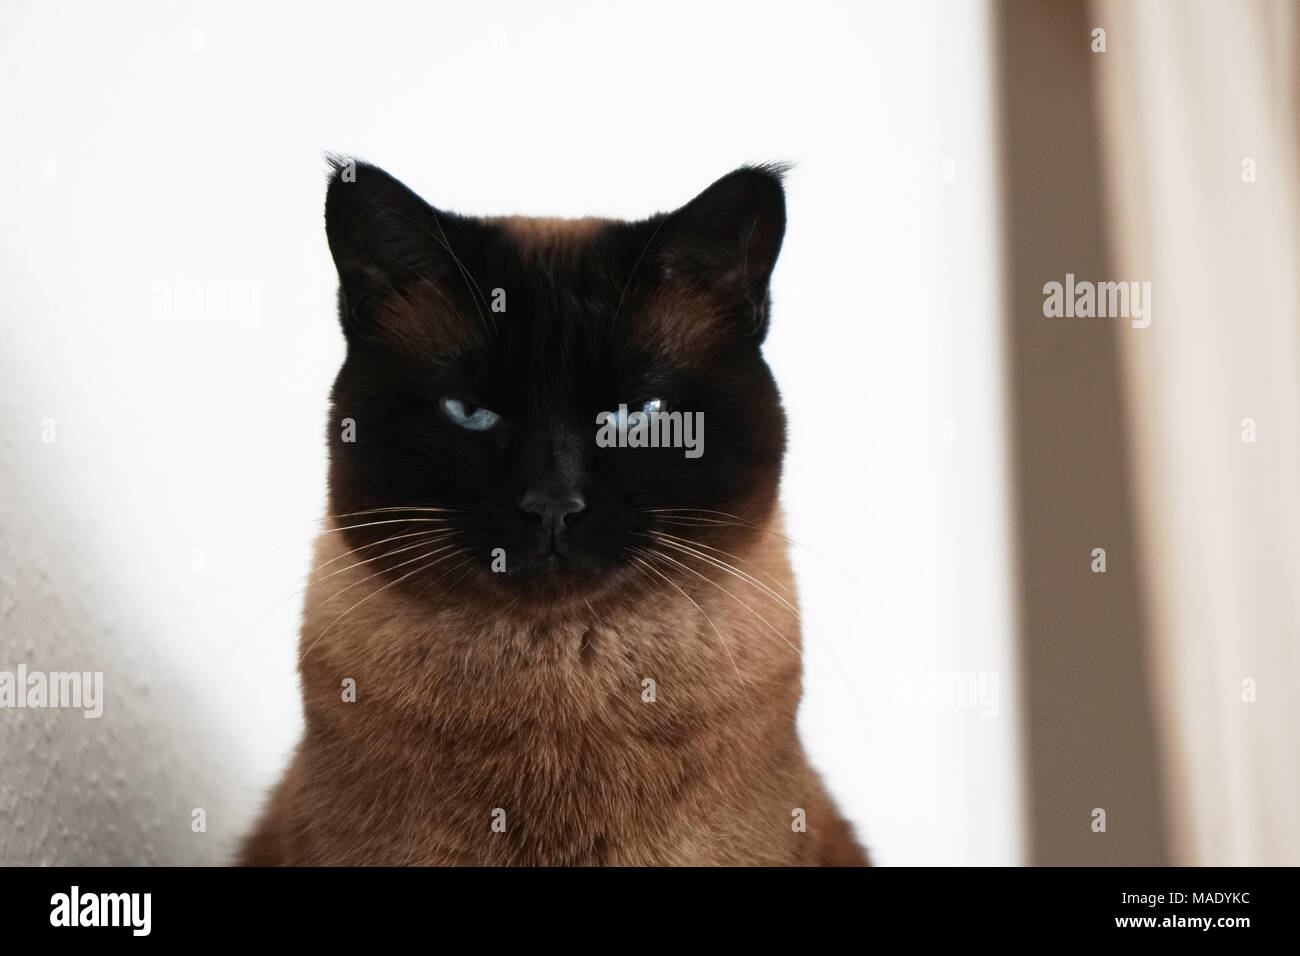 siamese cat with narrowed eyes and menacing look - Stock Image